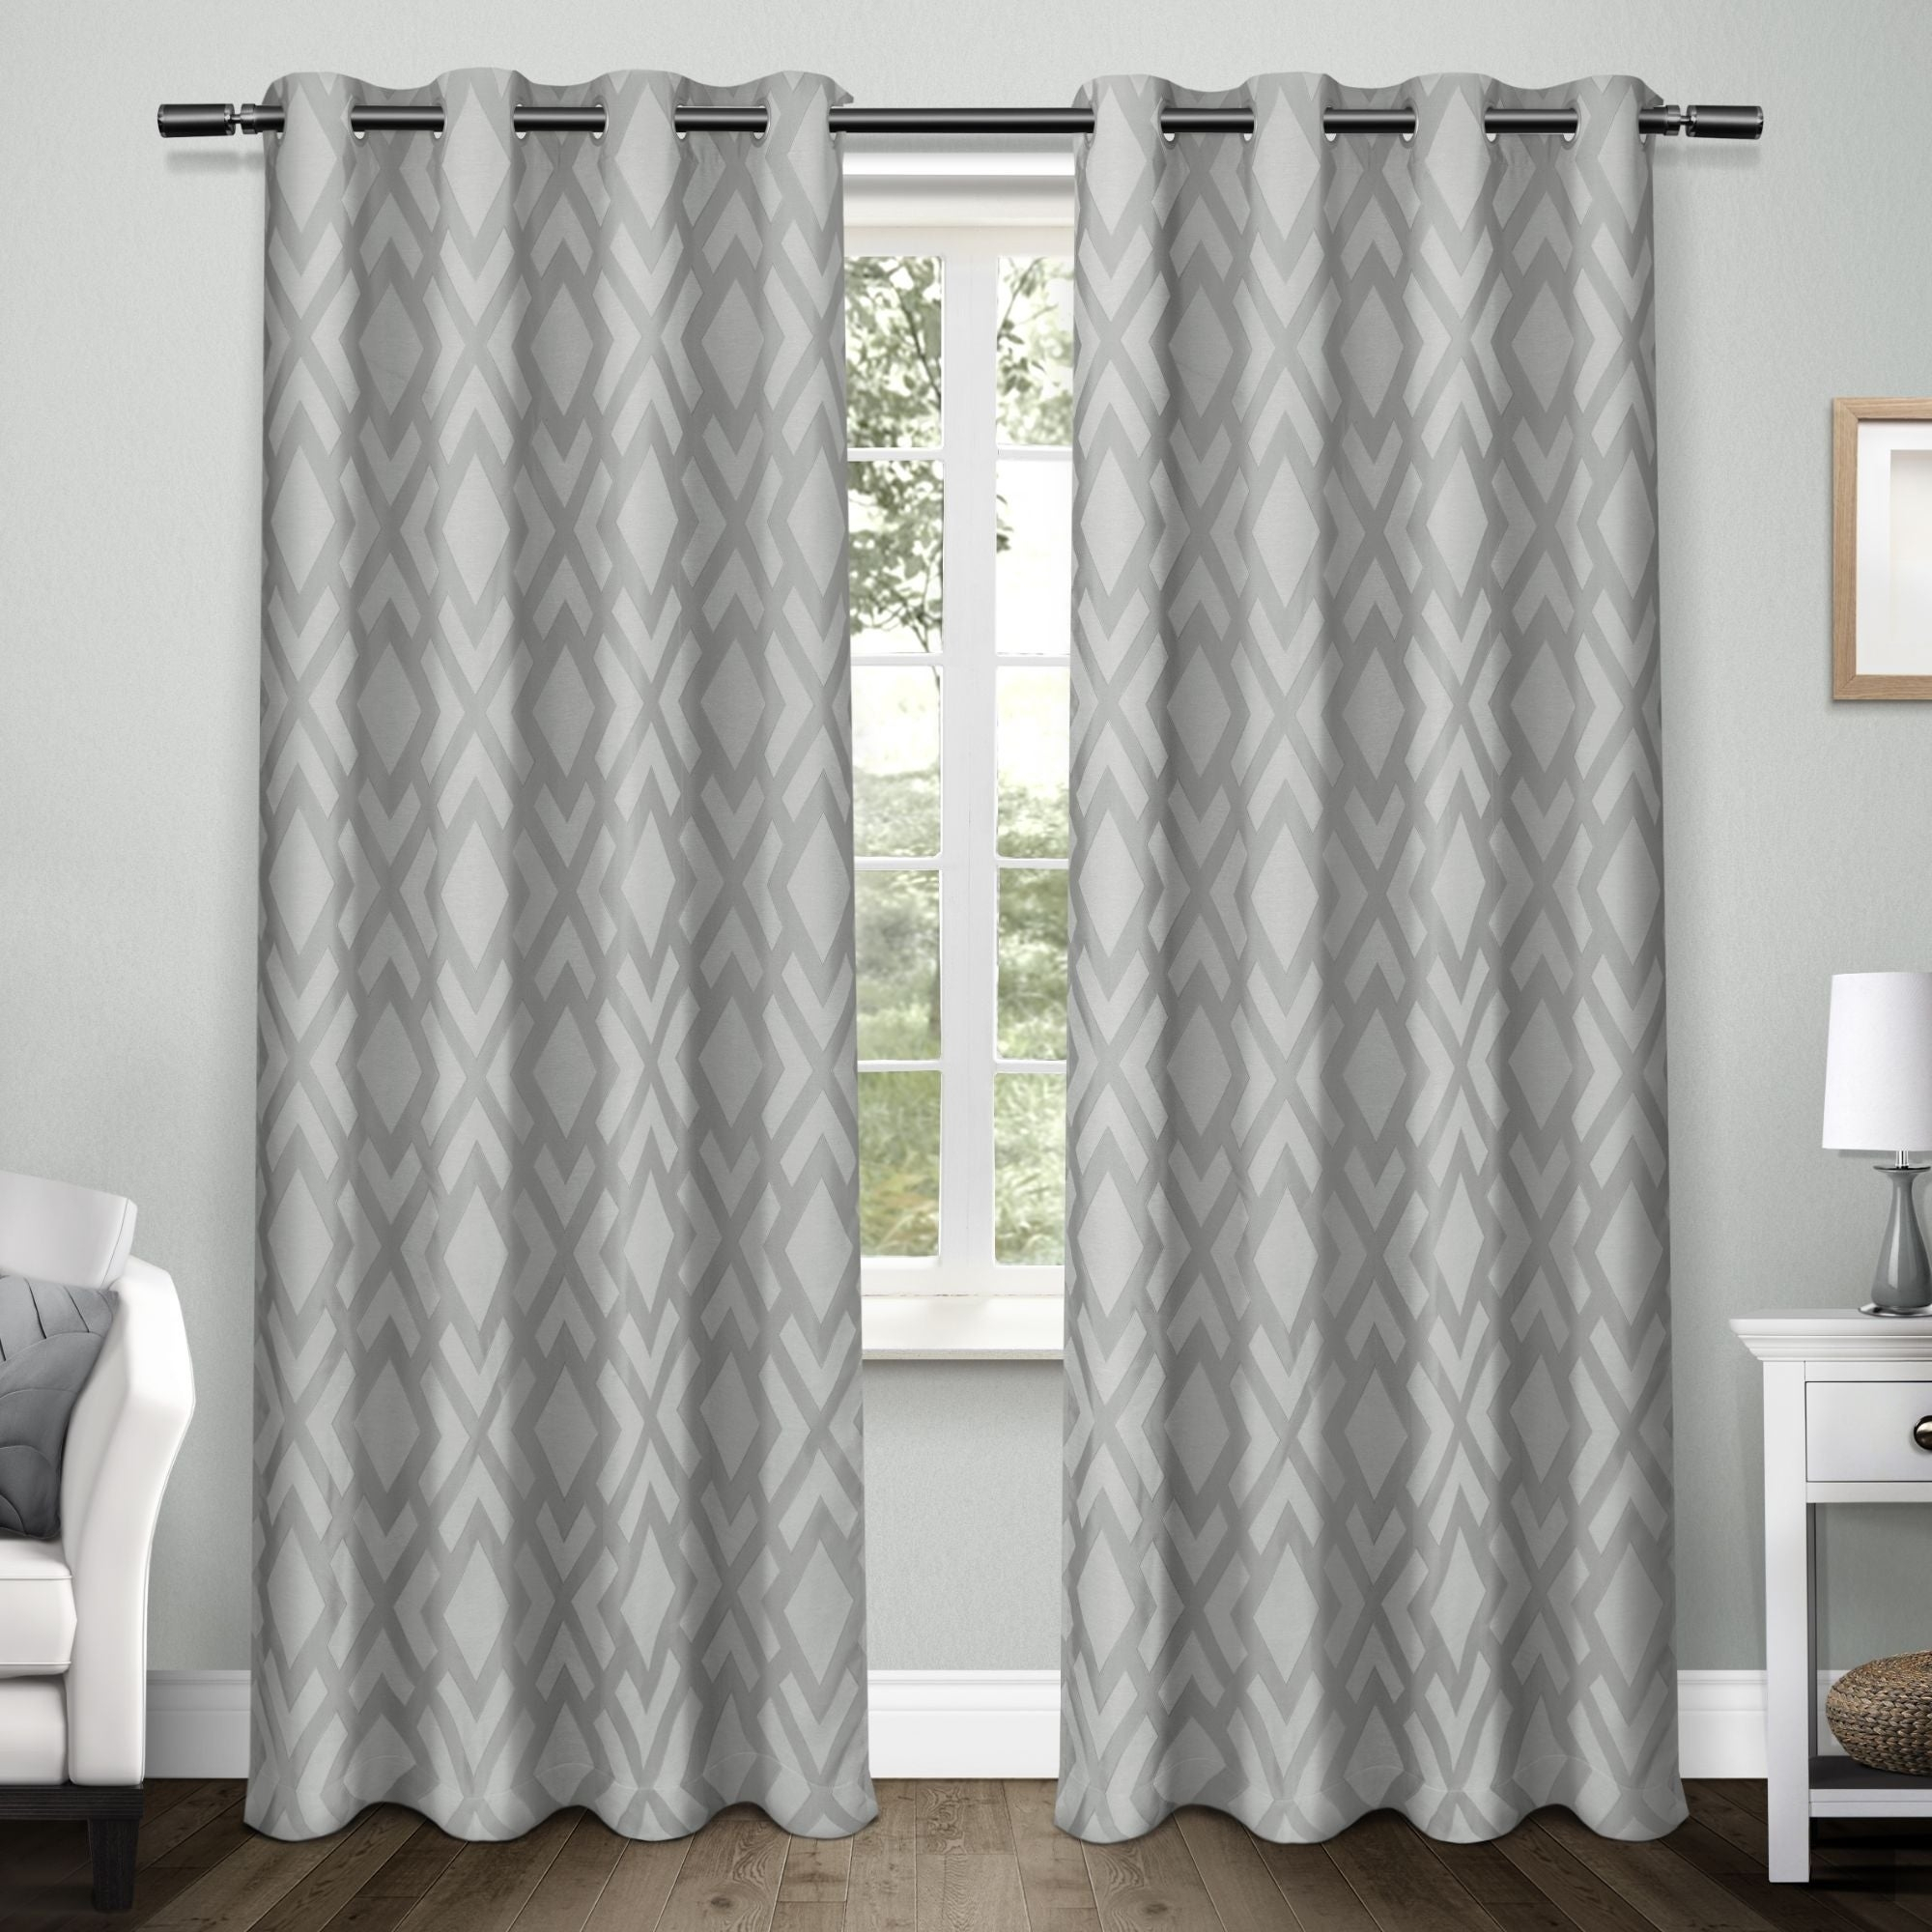 Ati Home Easton Thermal Woven Blackout Grommet Top Curtain Panel Pair For Woven Blackout Grommet Top Curtain Panel Pairs (View 3 of 30)